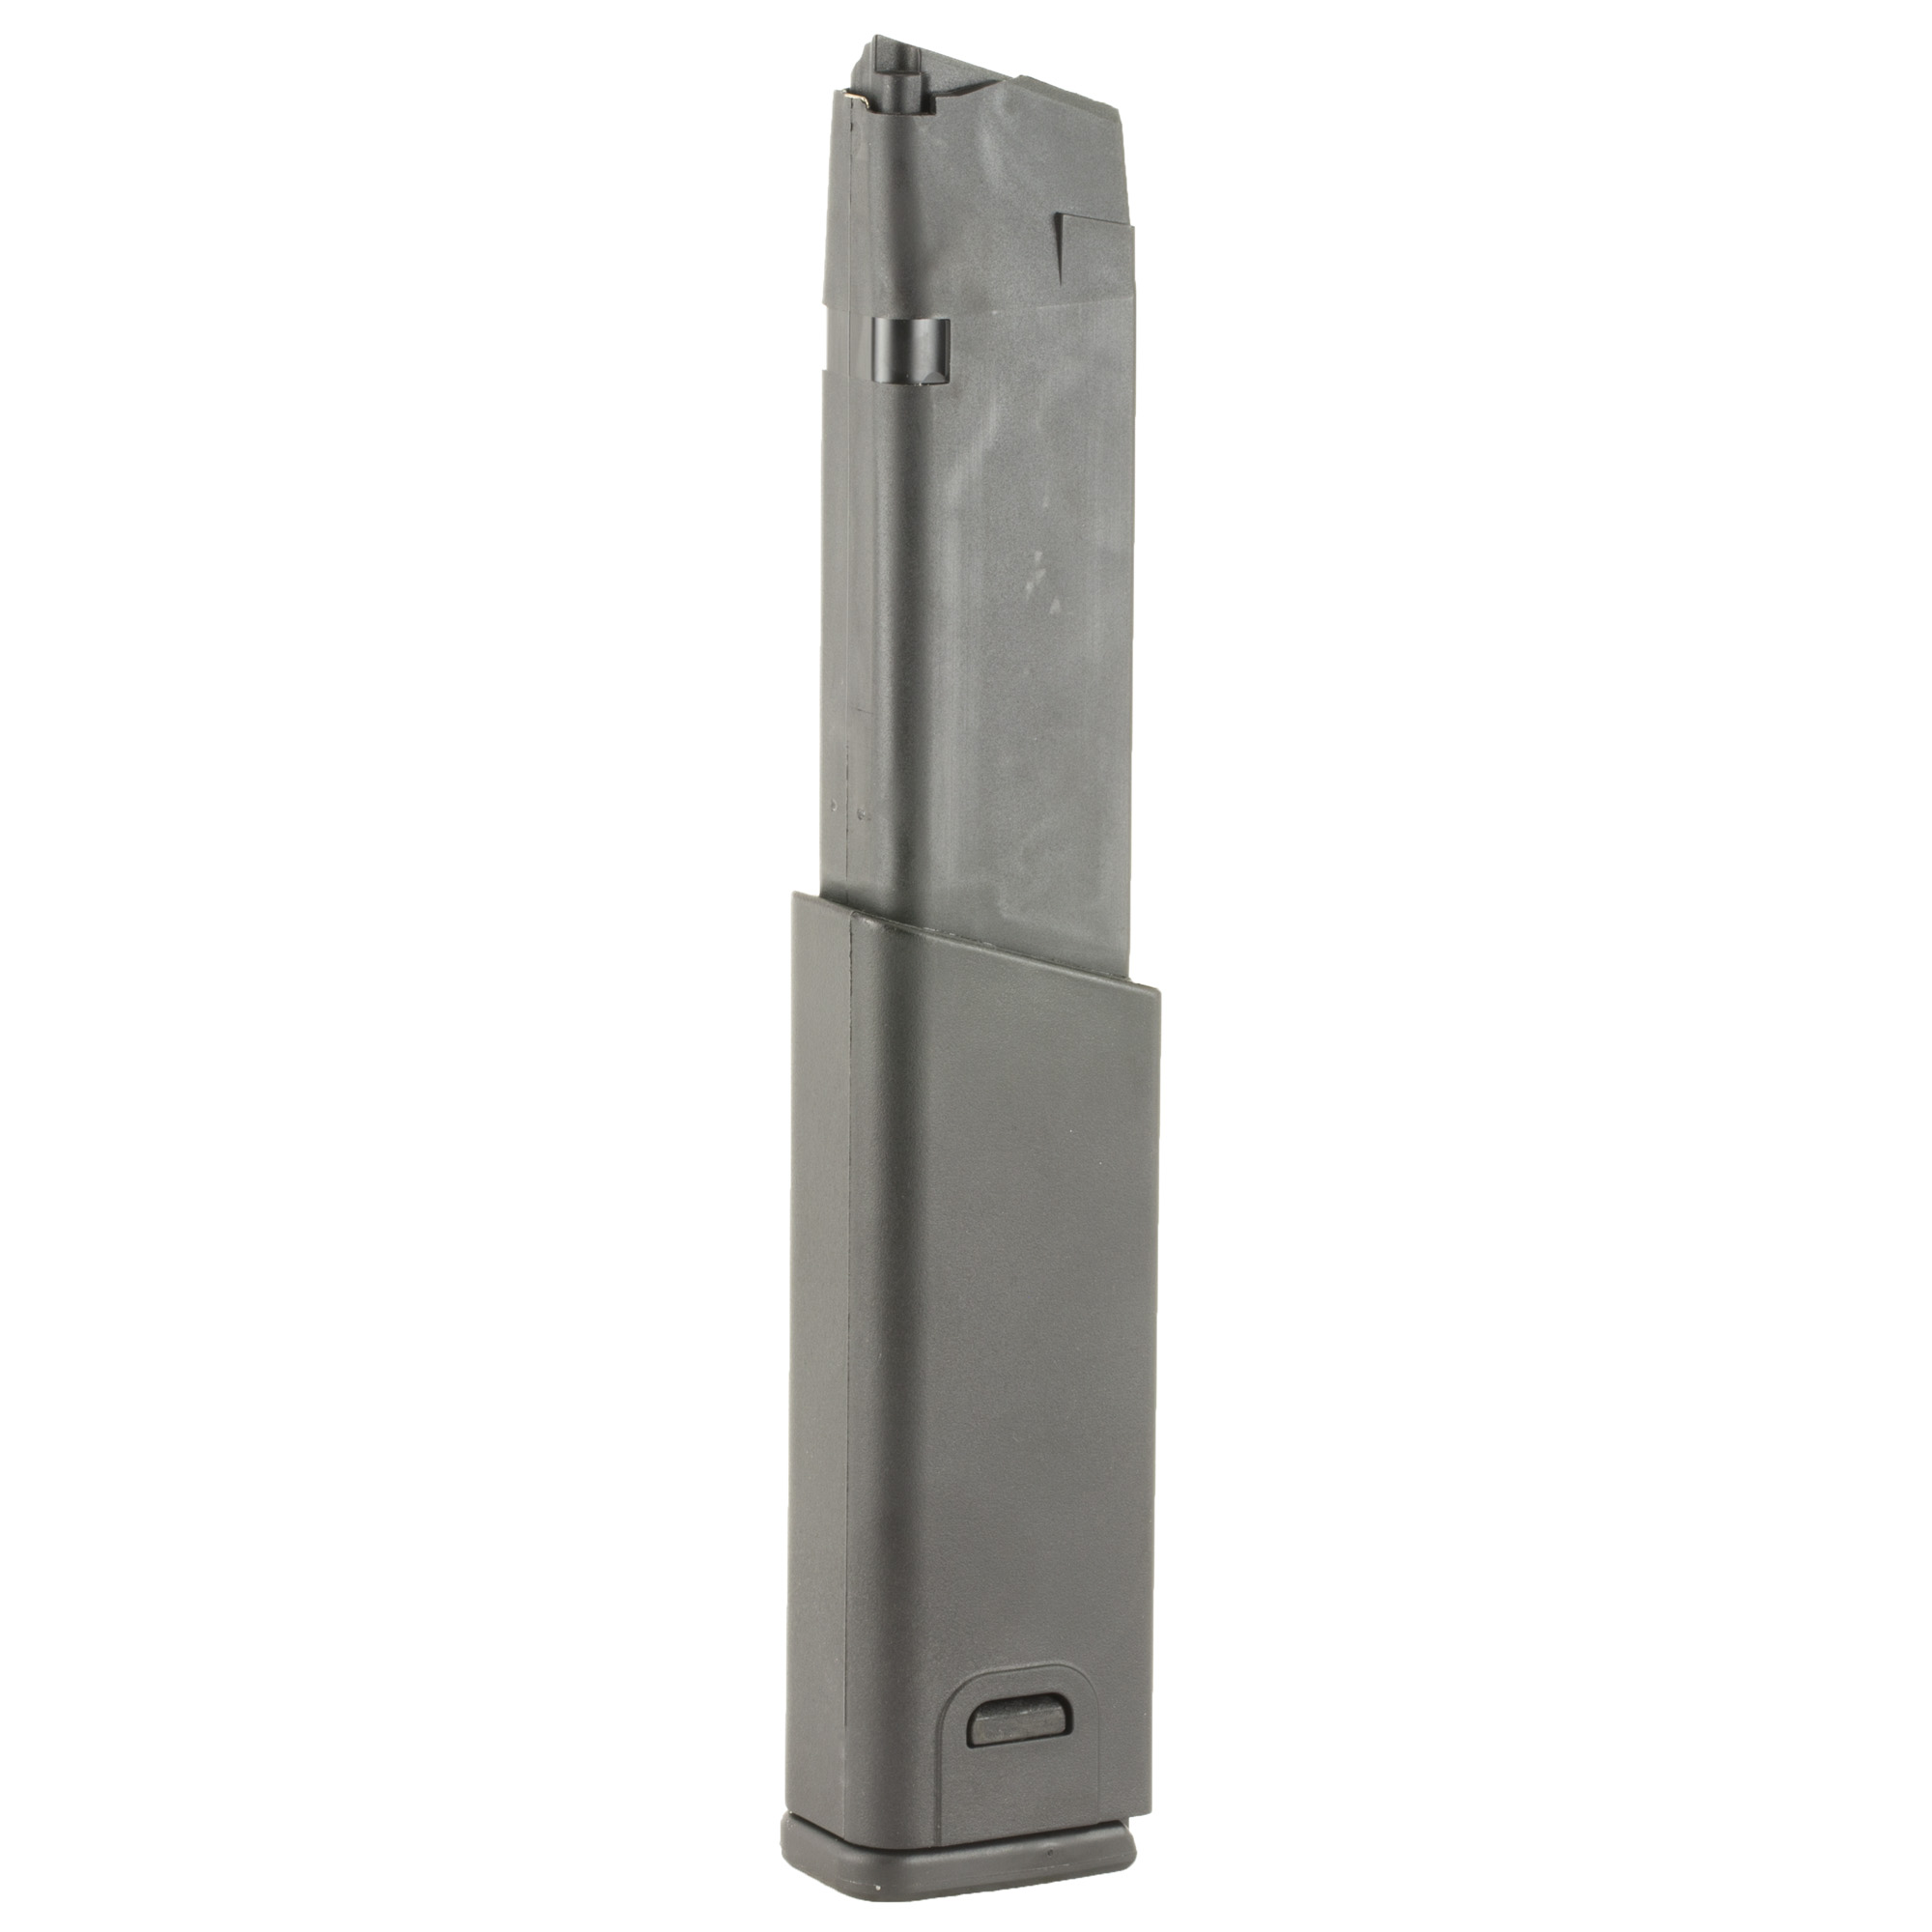 """The original KRISS MagEx extended magazine is a fully assembled MagEx Kit with a factory standard Glock 21 Magazine. The MagEx is the perfect match of reliable feeding"""" toughness"""" and aesthetics for the KRISS Vector. The MagEx is available .45ACP for an overall capacity of 25+ rounds for your KRISS Vector or Glock handgun."""